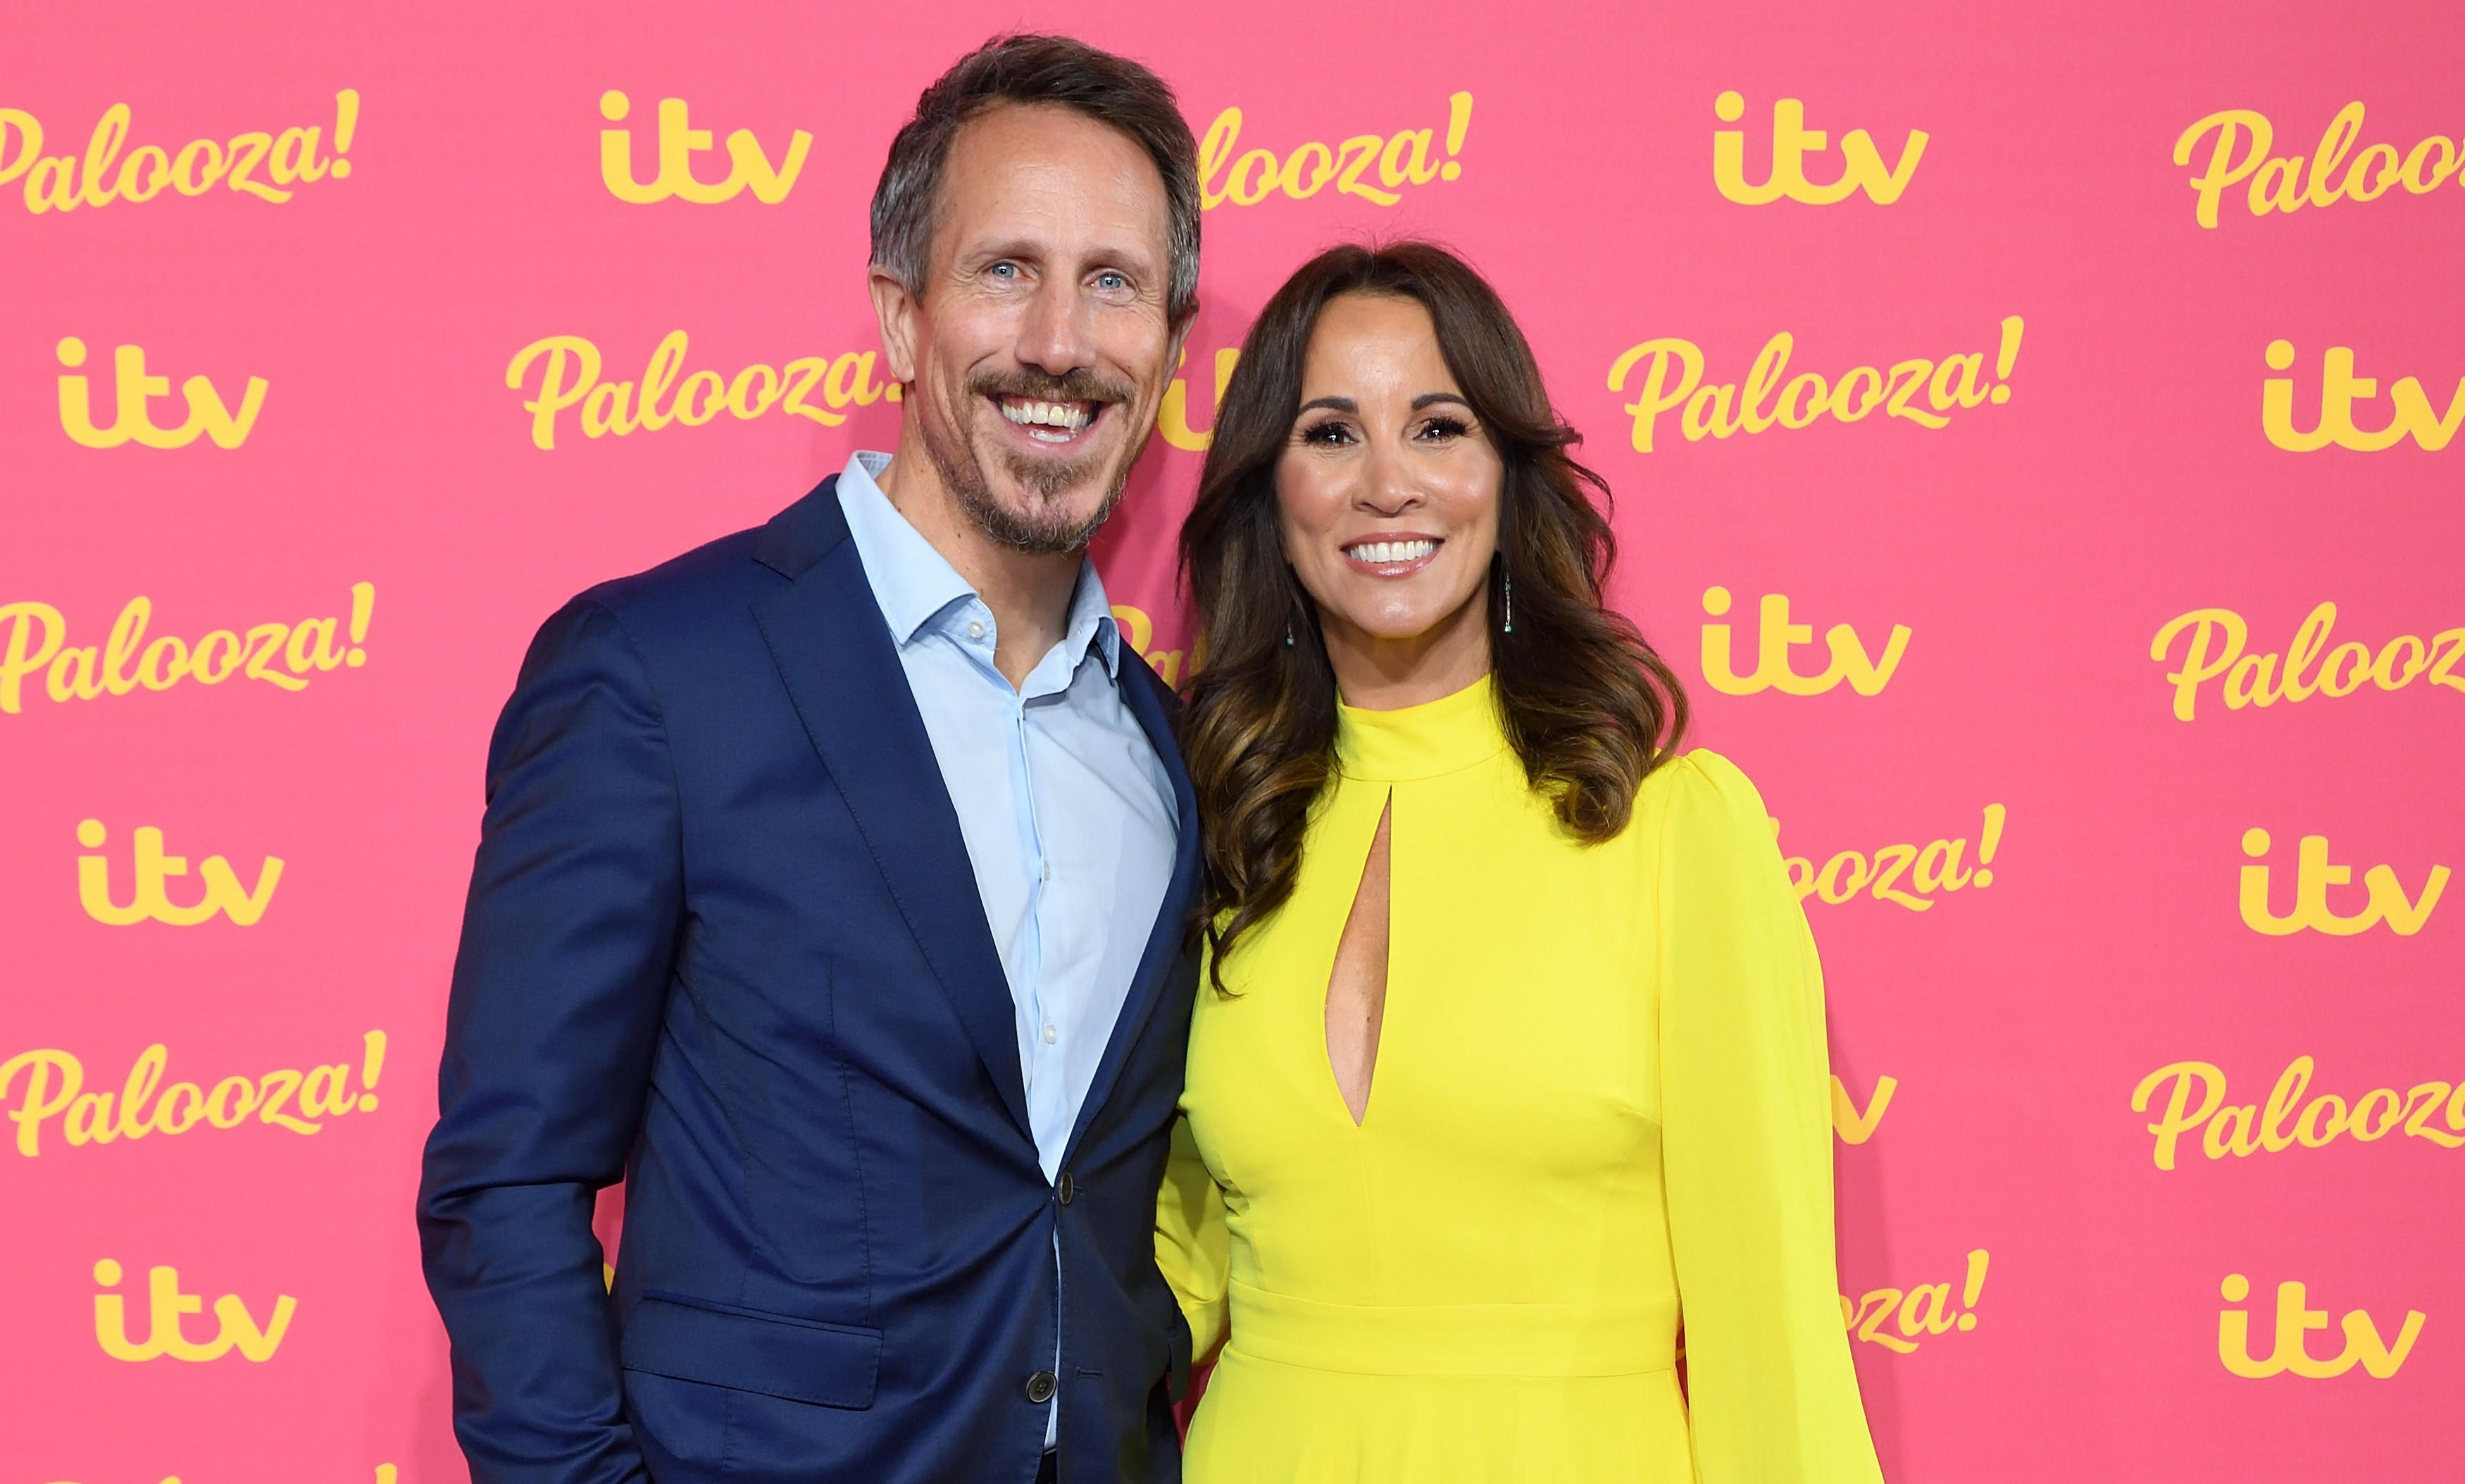 'Loose Women's Andrea McLean having marriage counselling